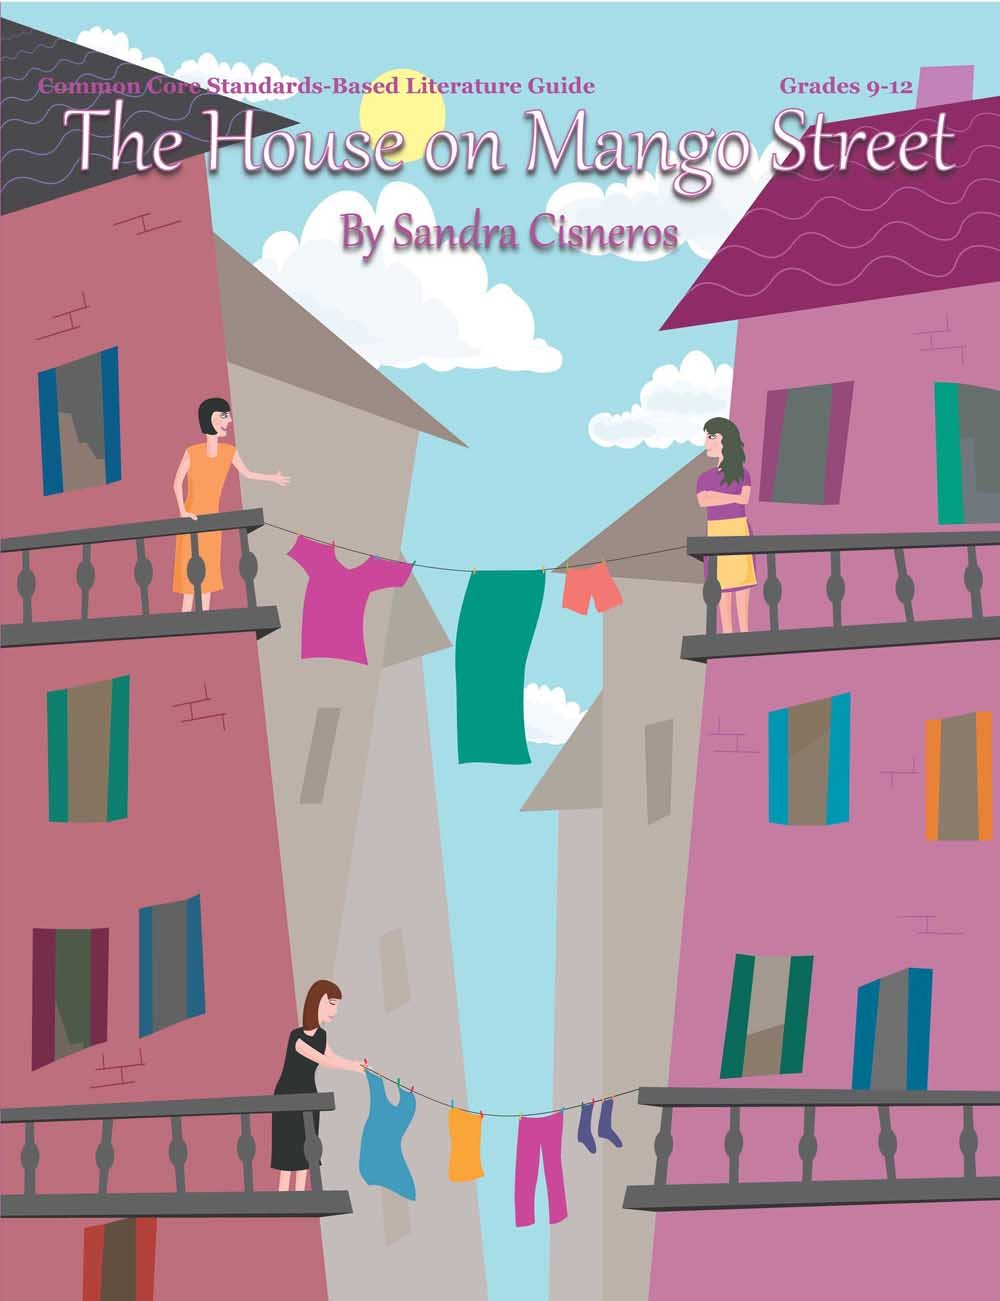 Attractive Amazon.com: House On Mango Street Teacher Guide   Literature Teaching Unit  For The House On Mango Street By Sandra Cisneros (9781938913563): Debra  Navratil: ...